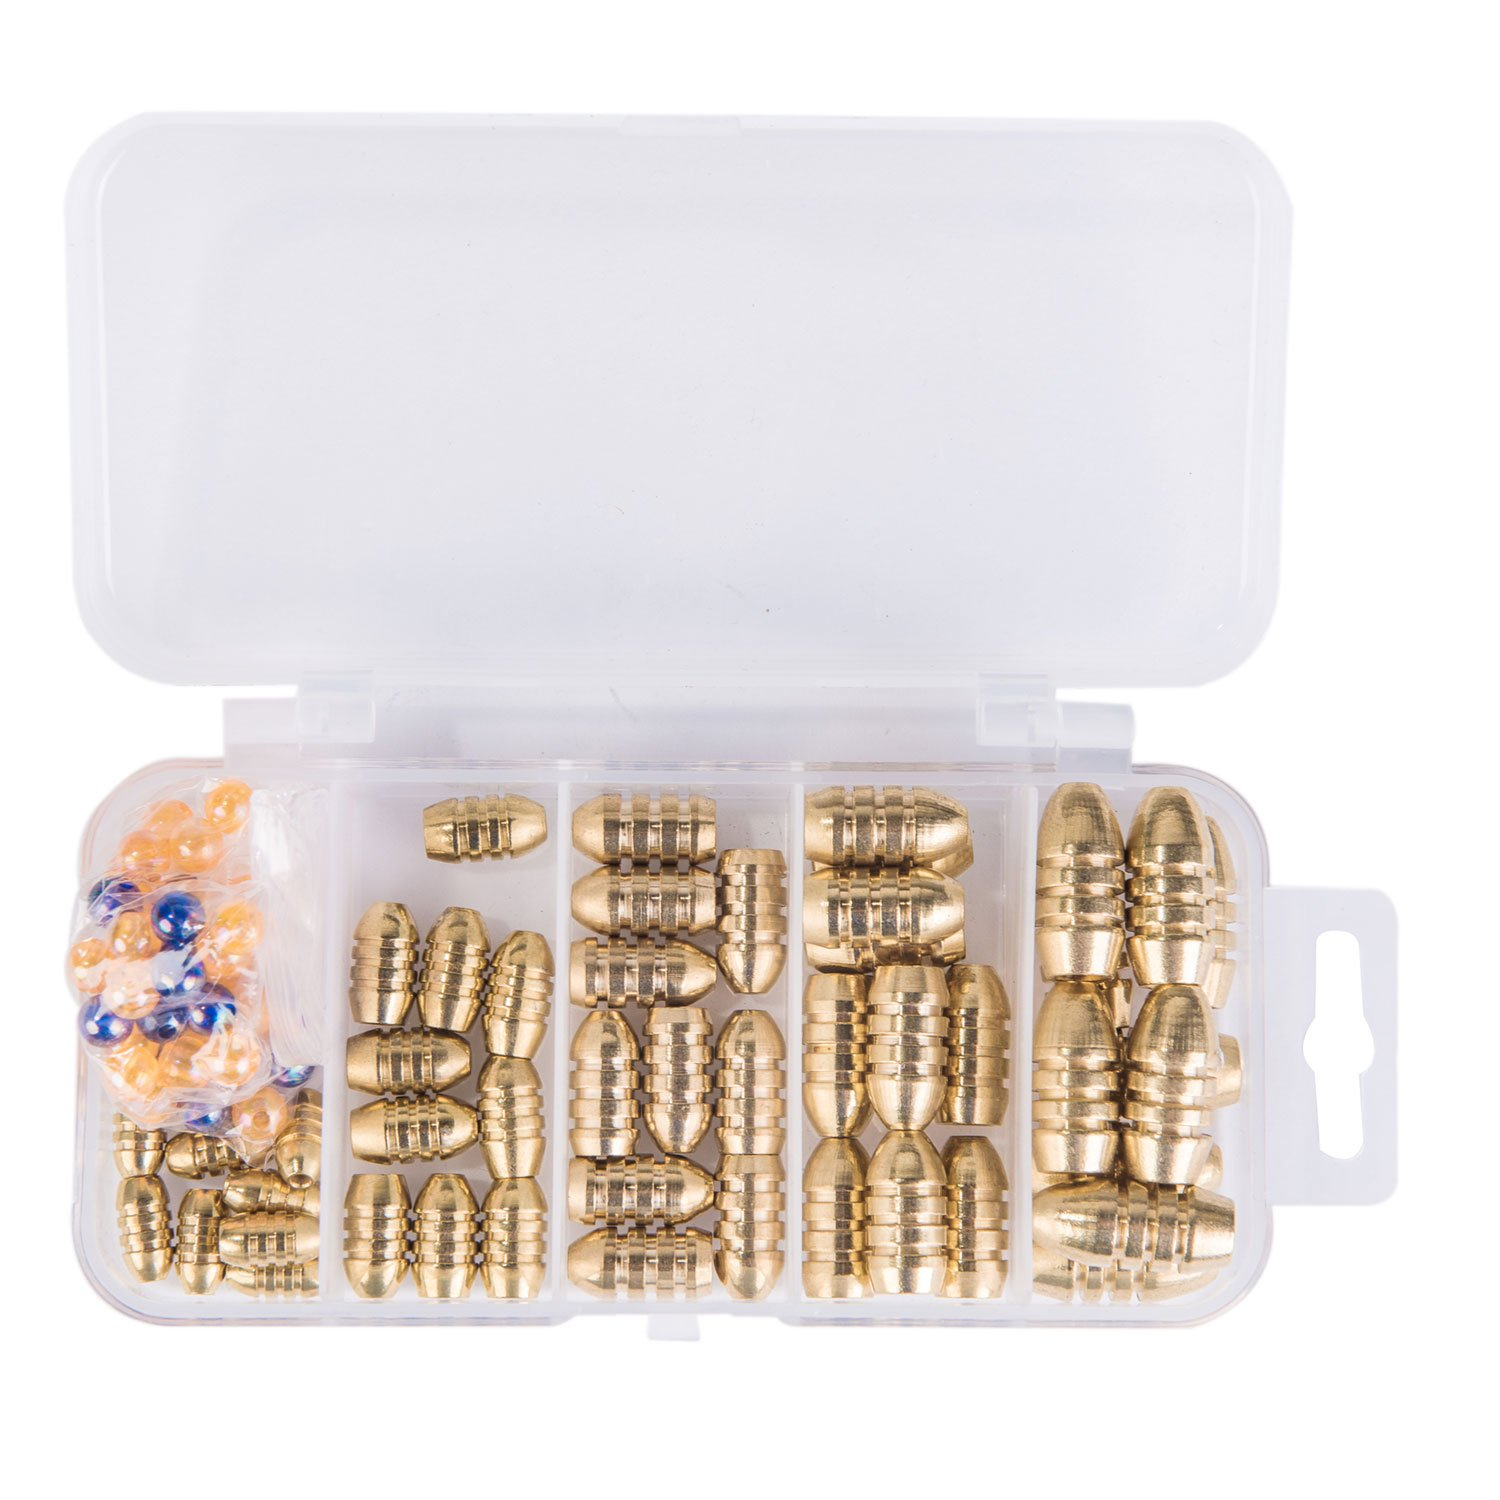 GemanFish Fishing Sinkers Set with Fishing Beads,5 Size Brass Sinker Weights in a Plastic Box for Saltwater Freshwater Trout Bass Salmon Fishing Pack of 100pcs